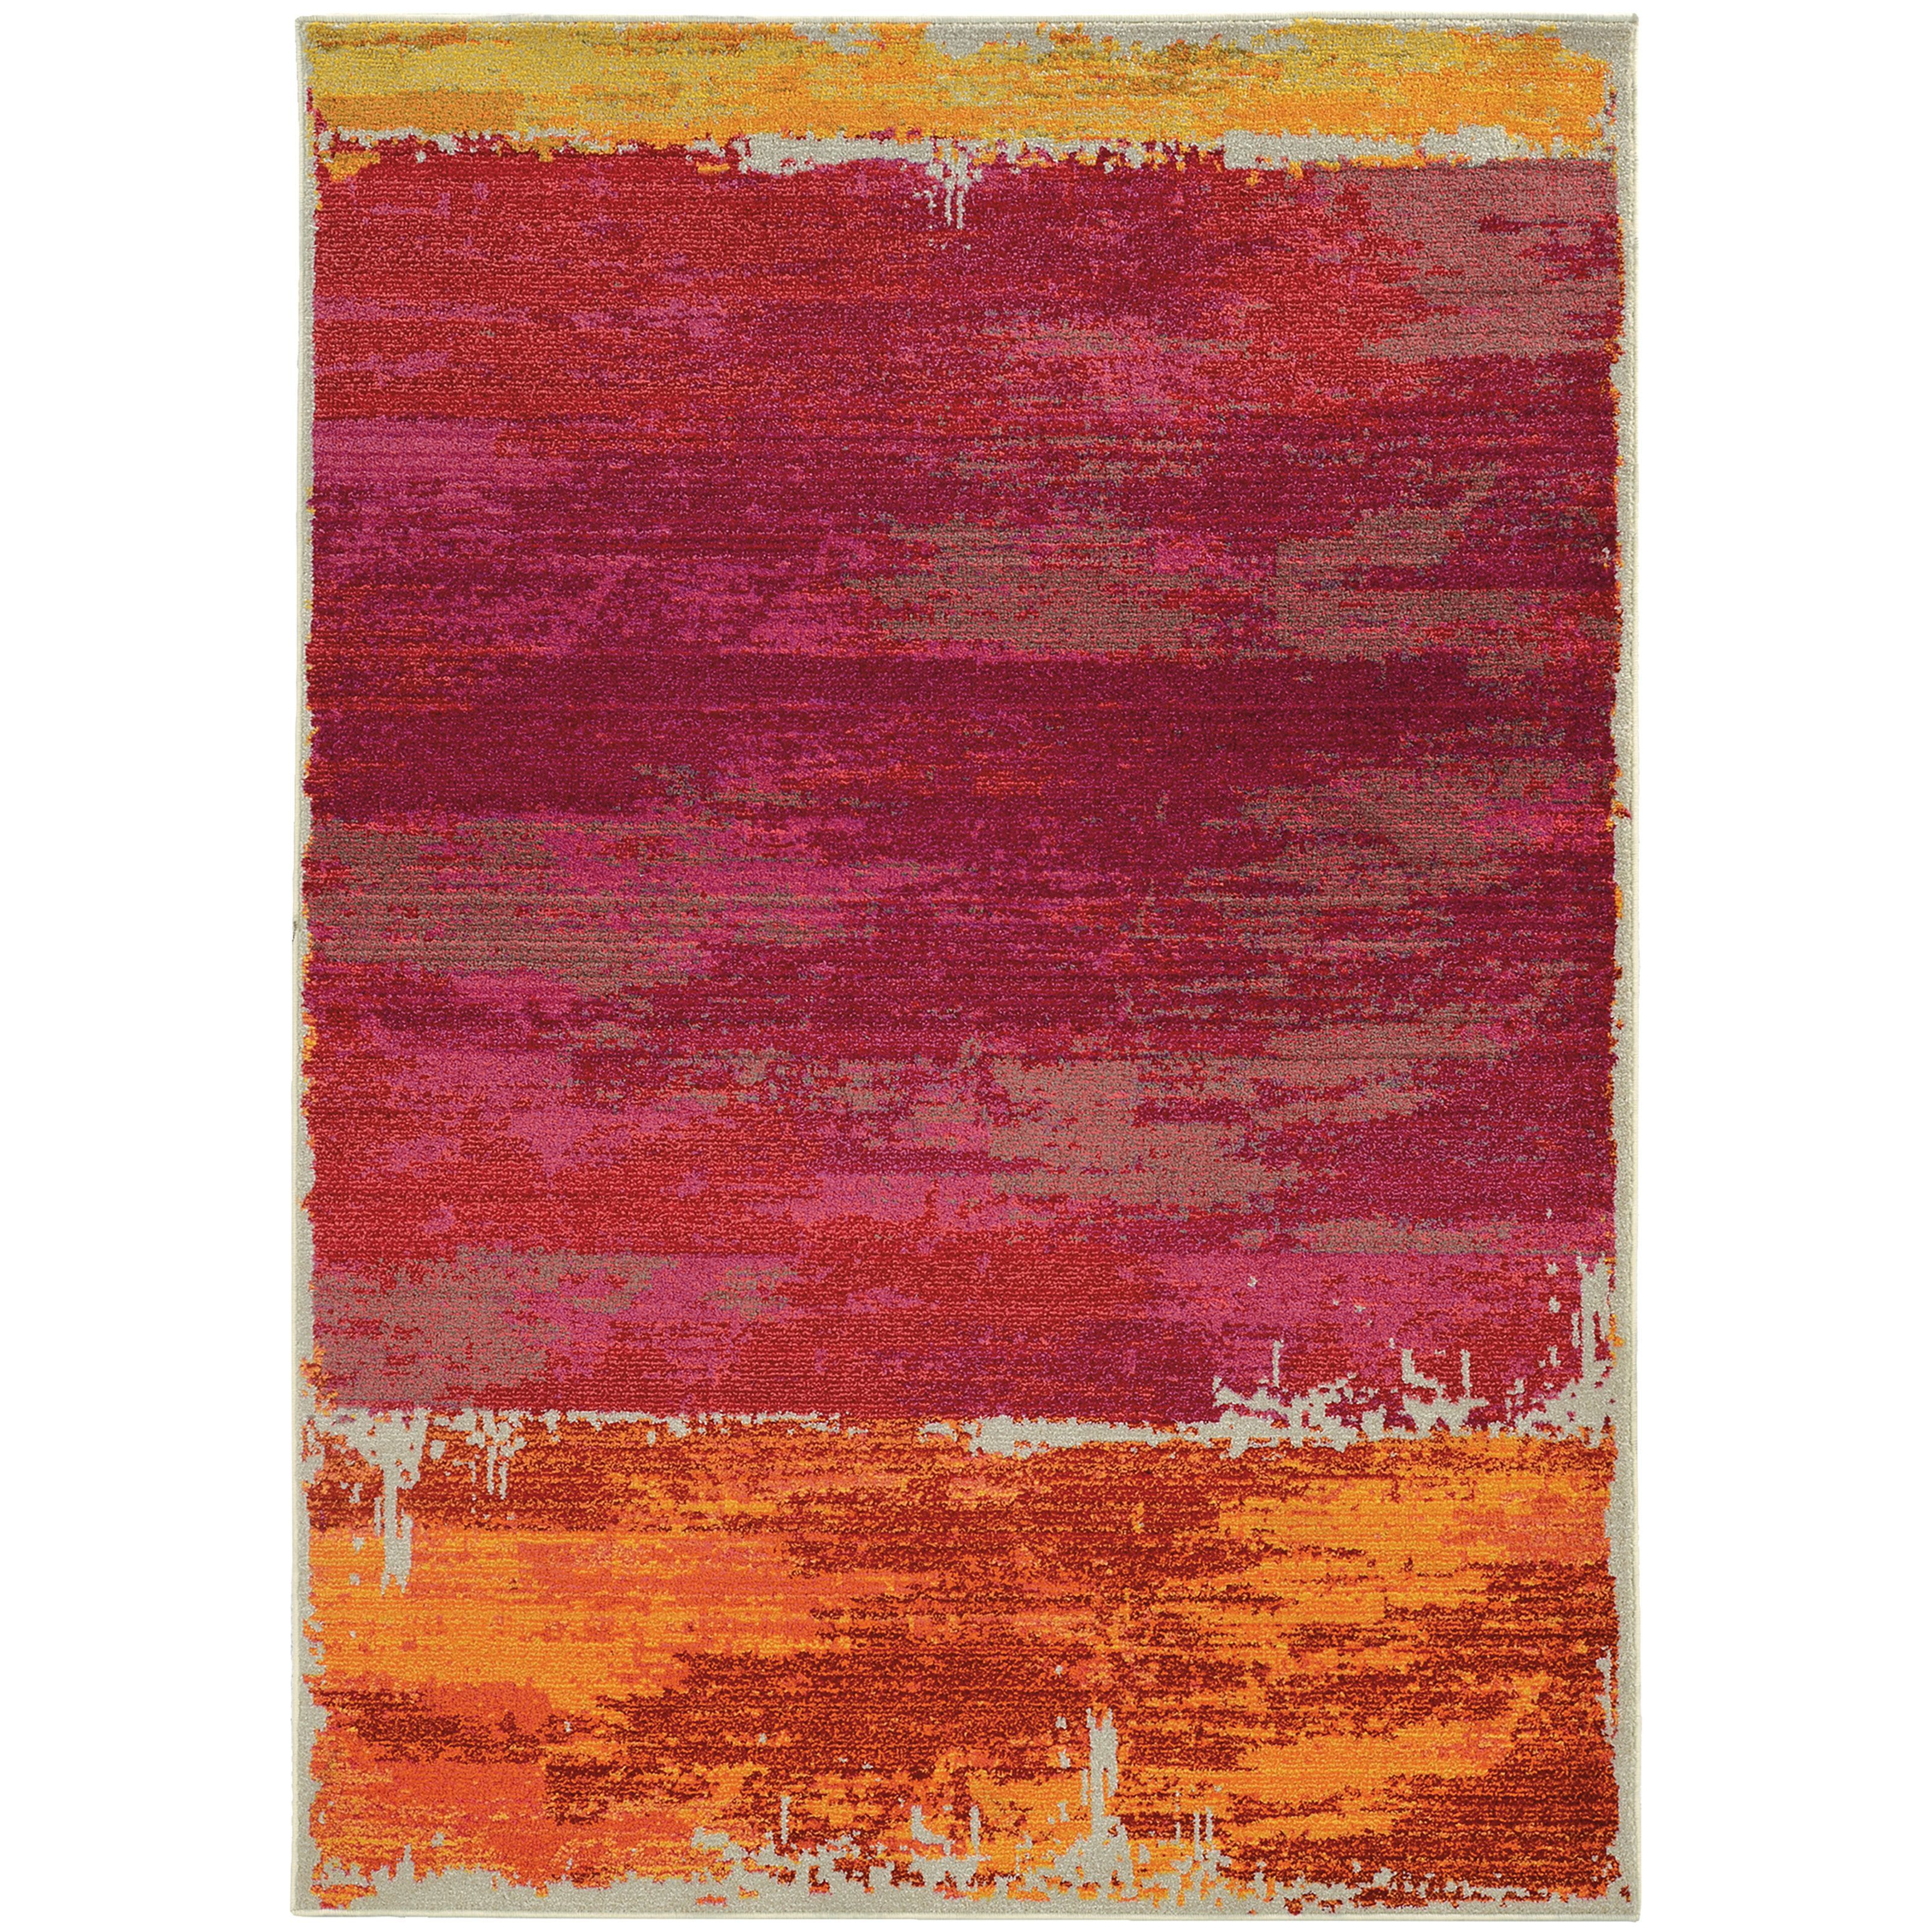 Aura Faded Abstract Orange Pink Area Rug 4 X 5 9 4 X 5 9